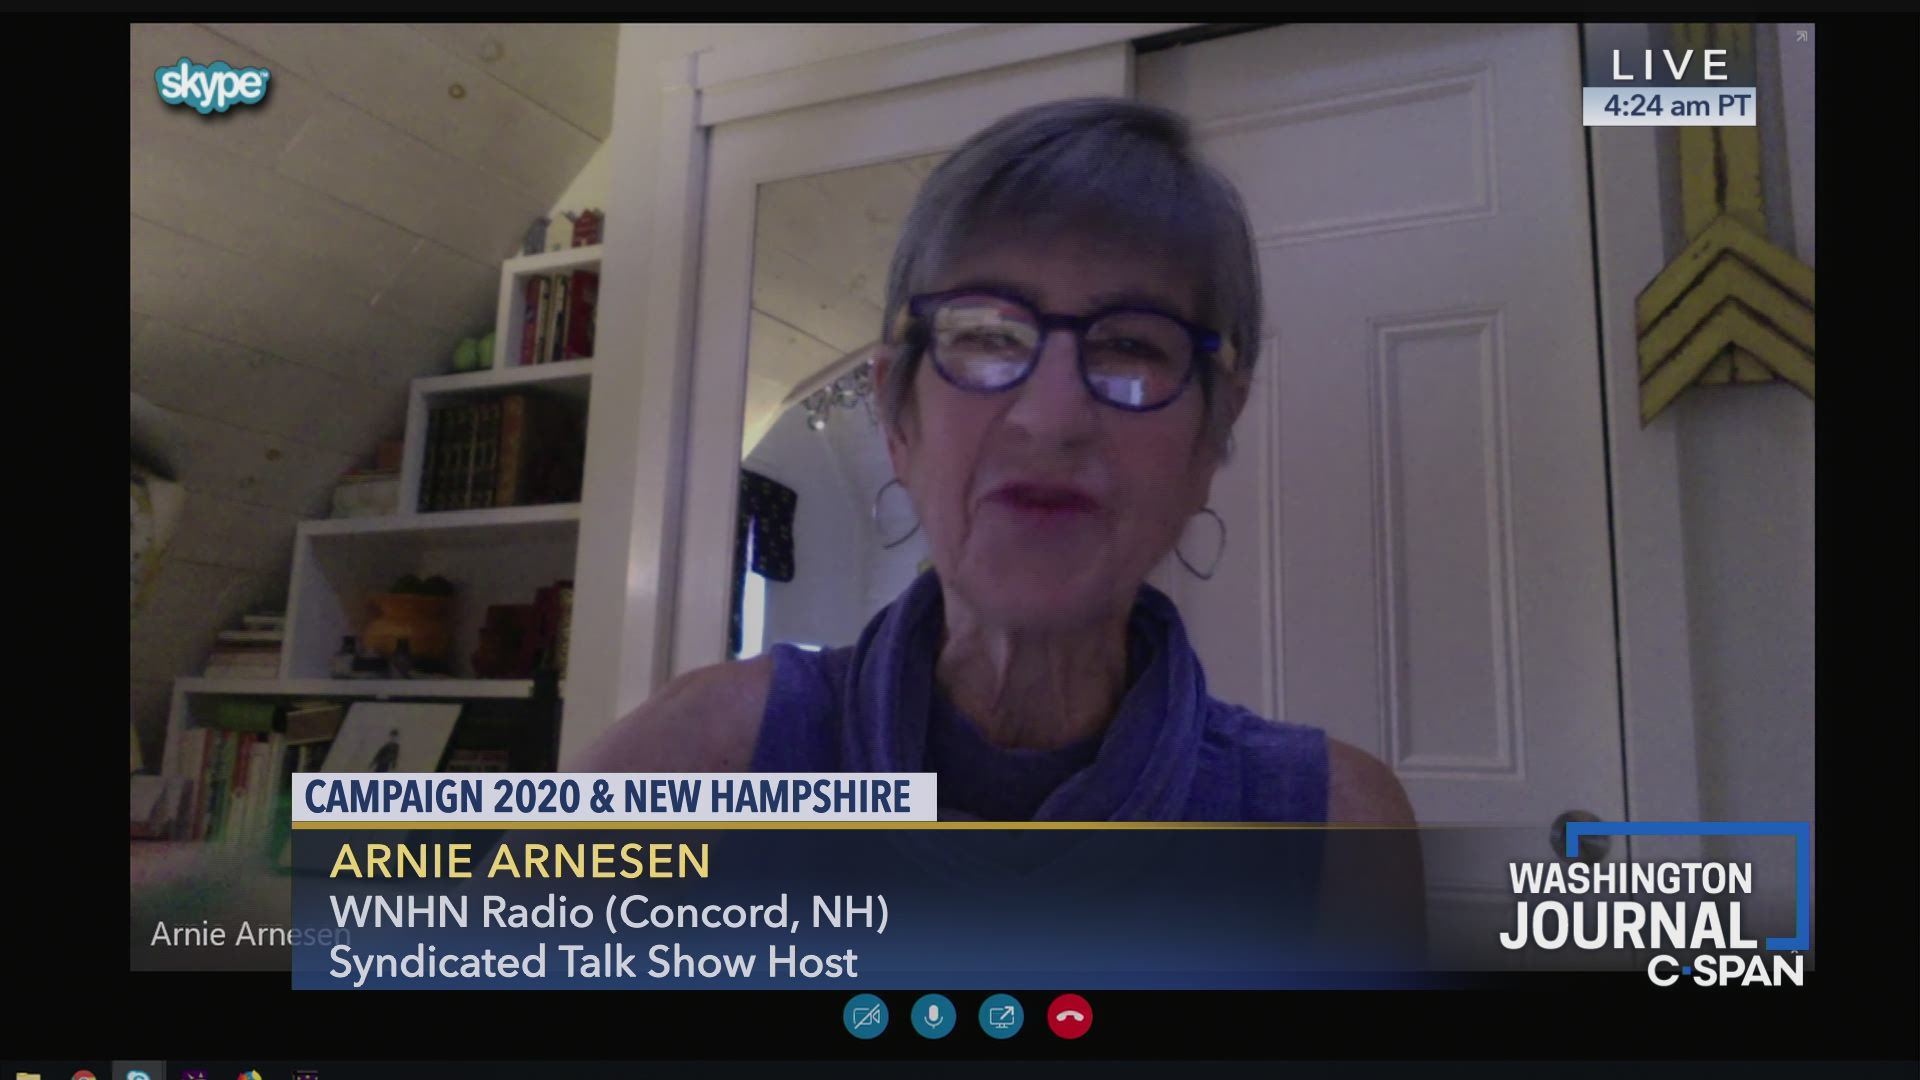 Arnie Arnesen on Campaign 2020 and New Hampshire